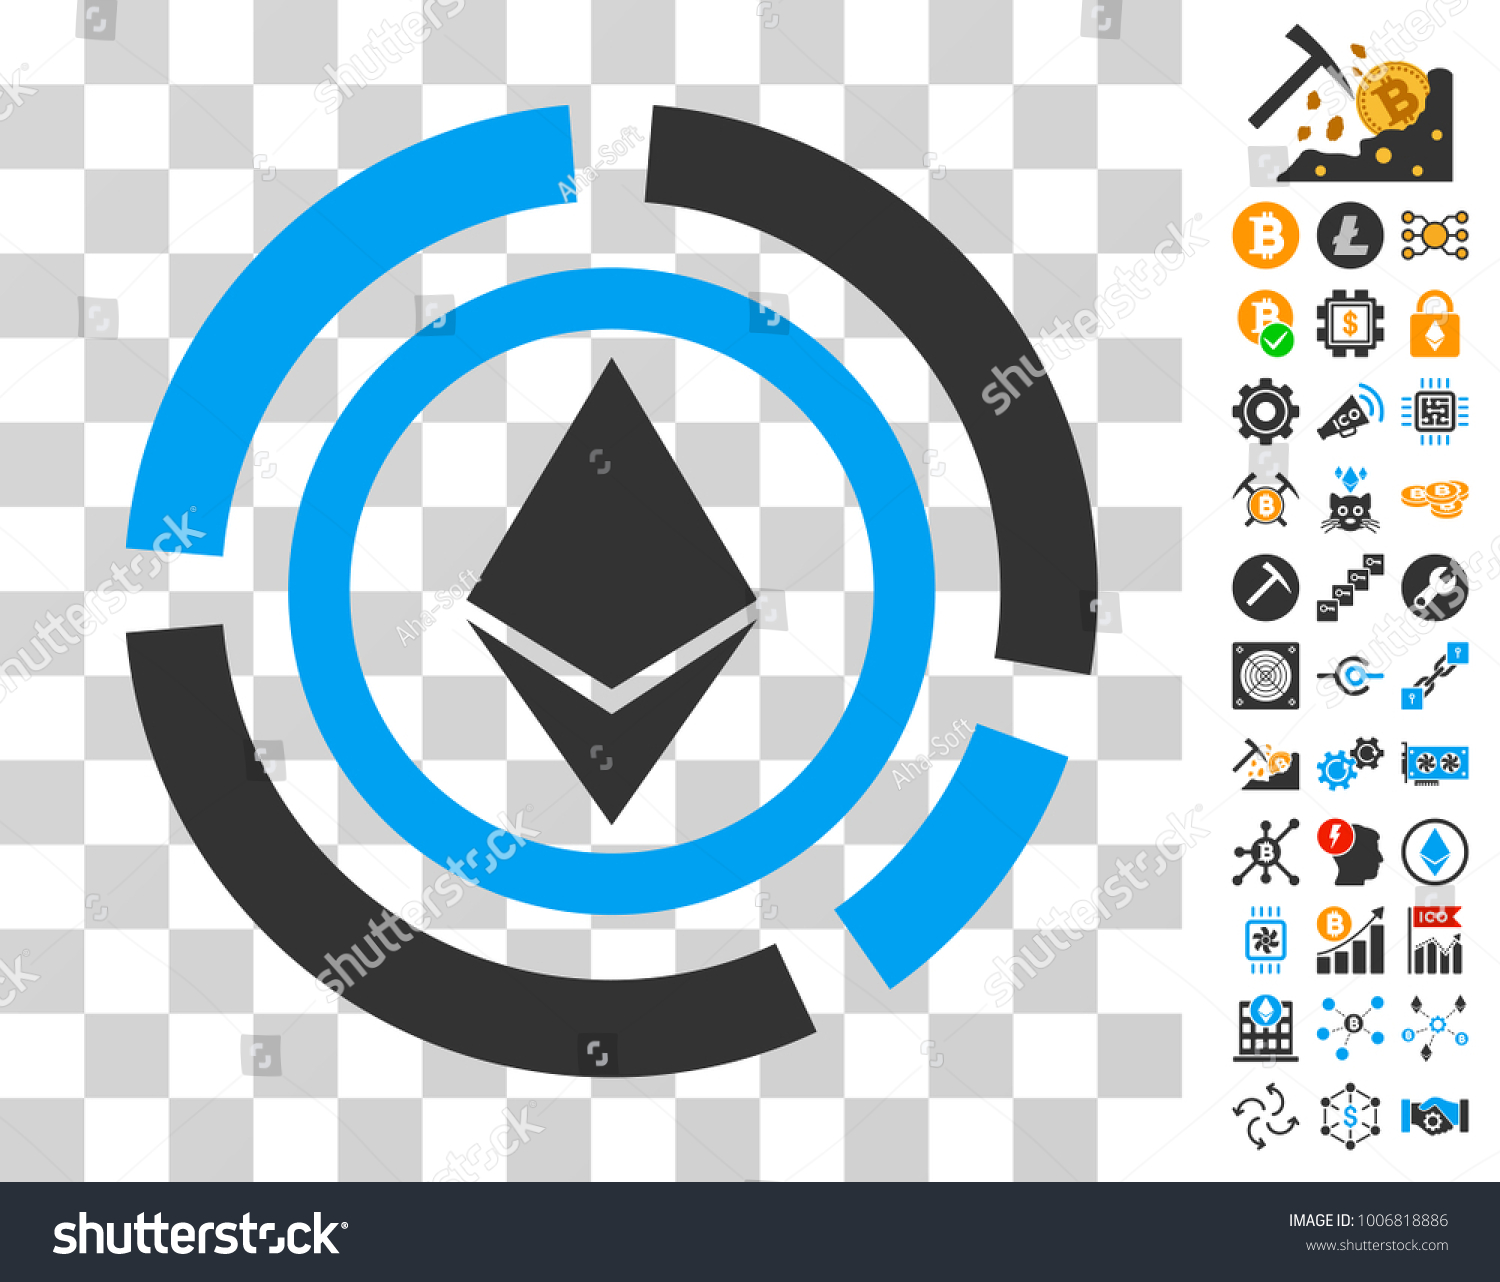 Ethereum Diagram Pictograph With Bonus Bitcoin Mining And Blockchain Images Vector Illustration Style Is Flat